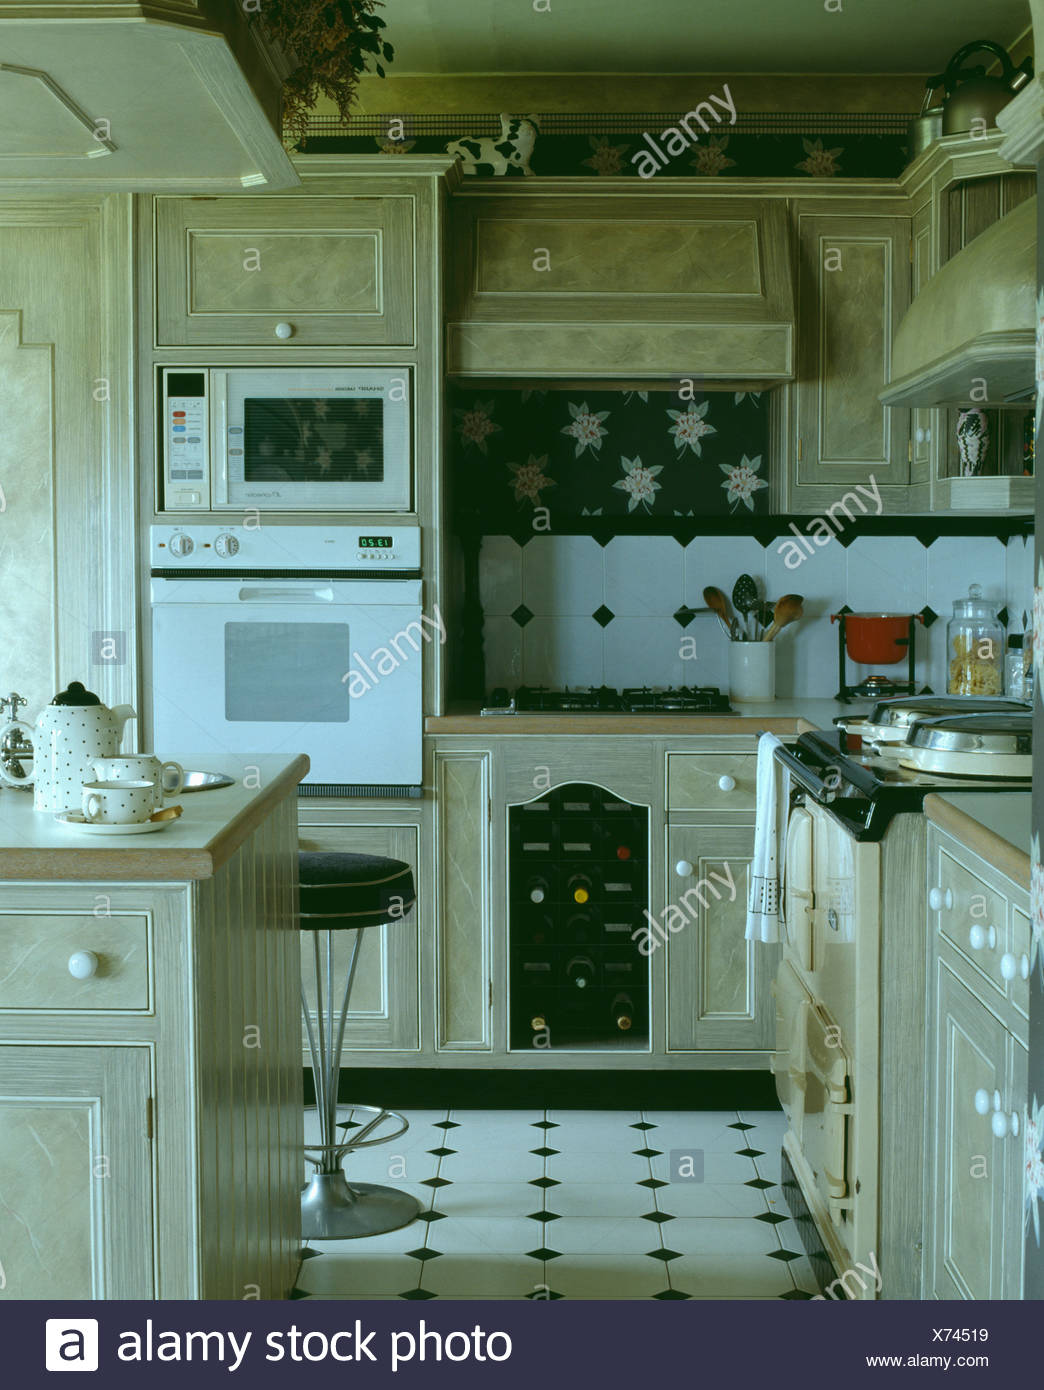 Eye-level microwave and white oven in kitchen with paint effect ...